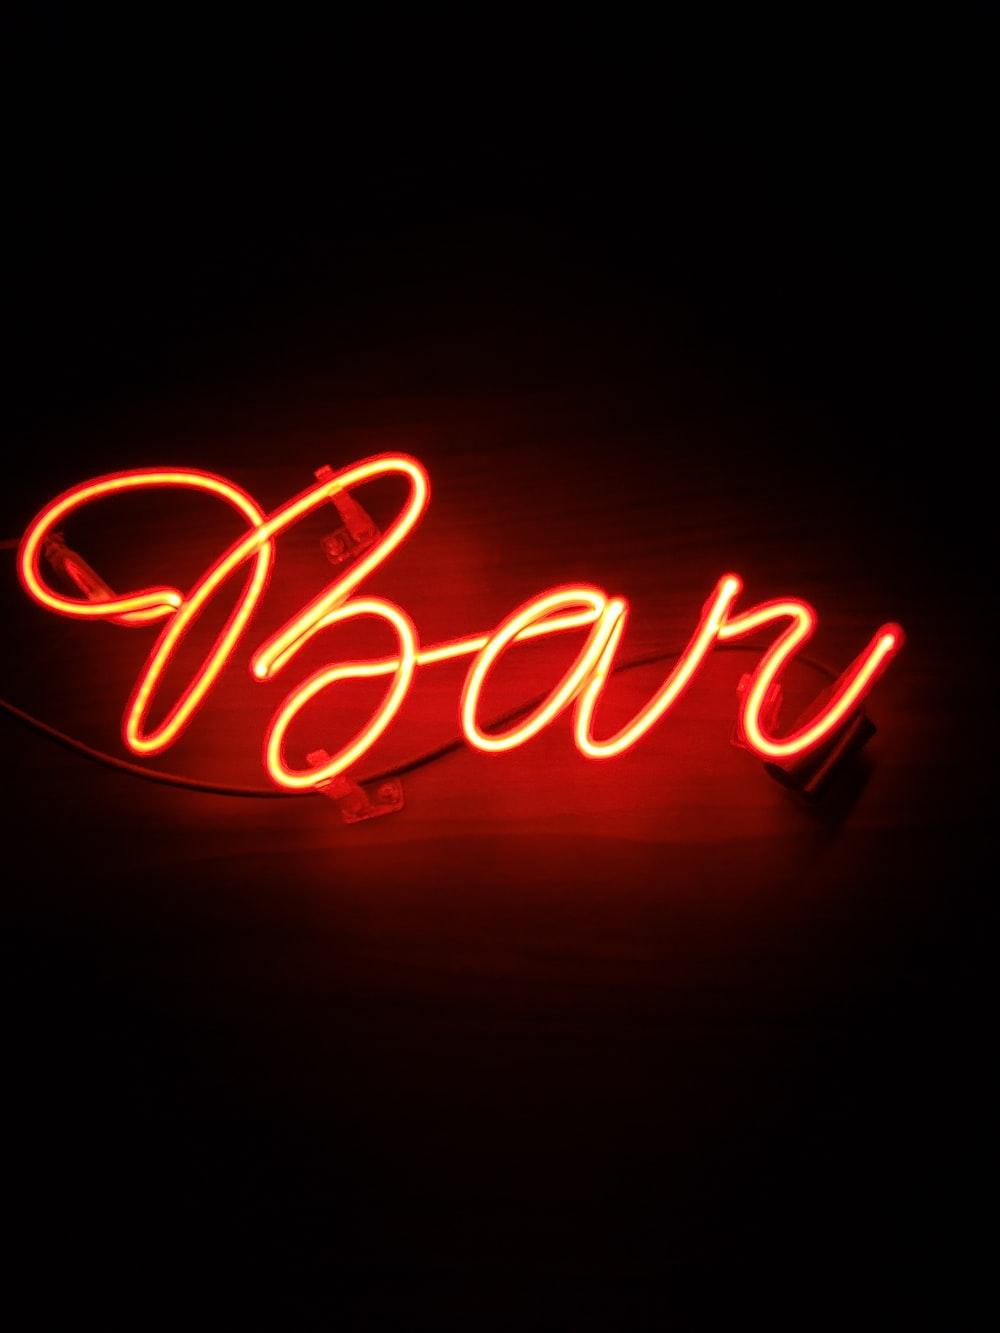 Neon Light Bar And Neonlights Hd Photo By Leonardo Sanches